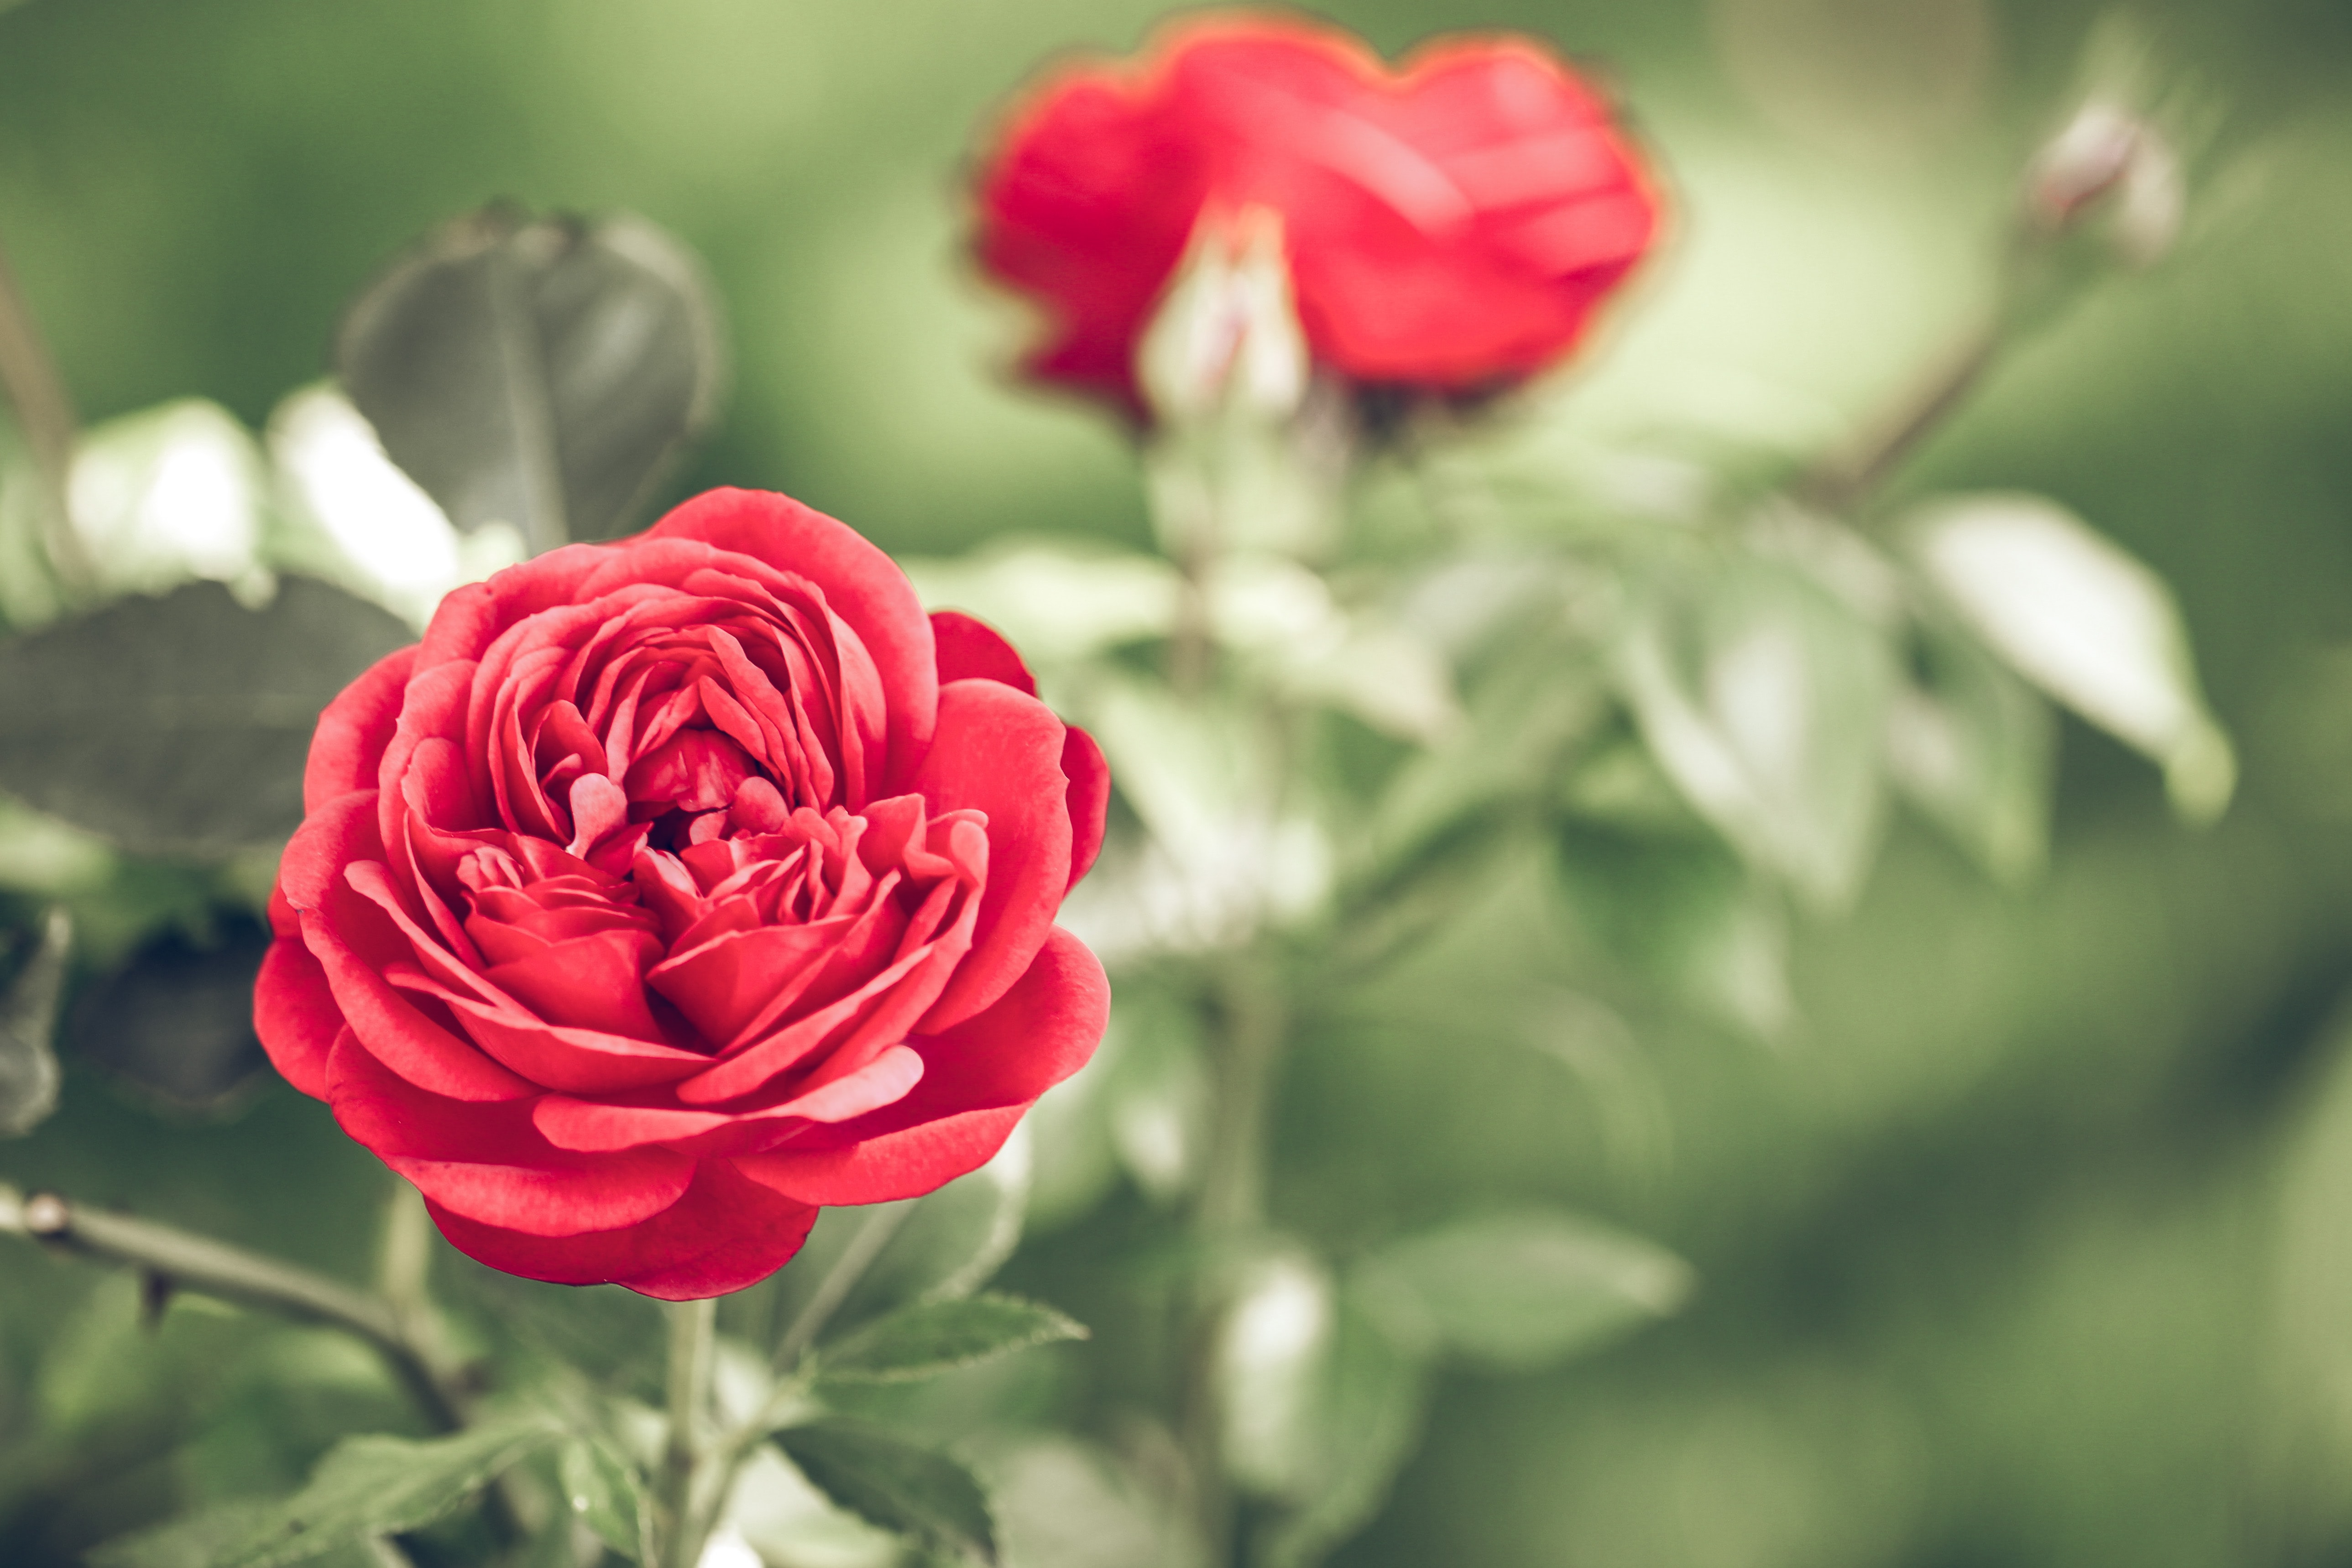 Rose Garden, Best Things To See And Do In Switzerland